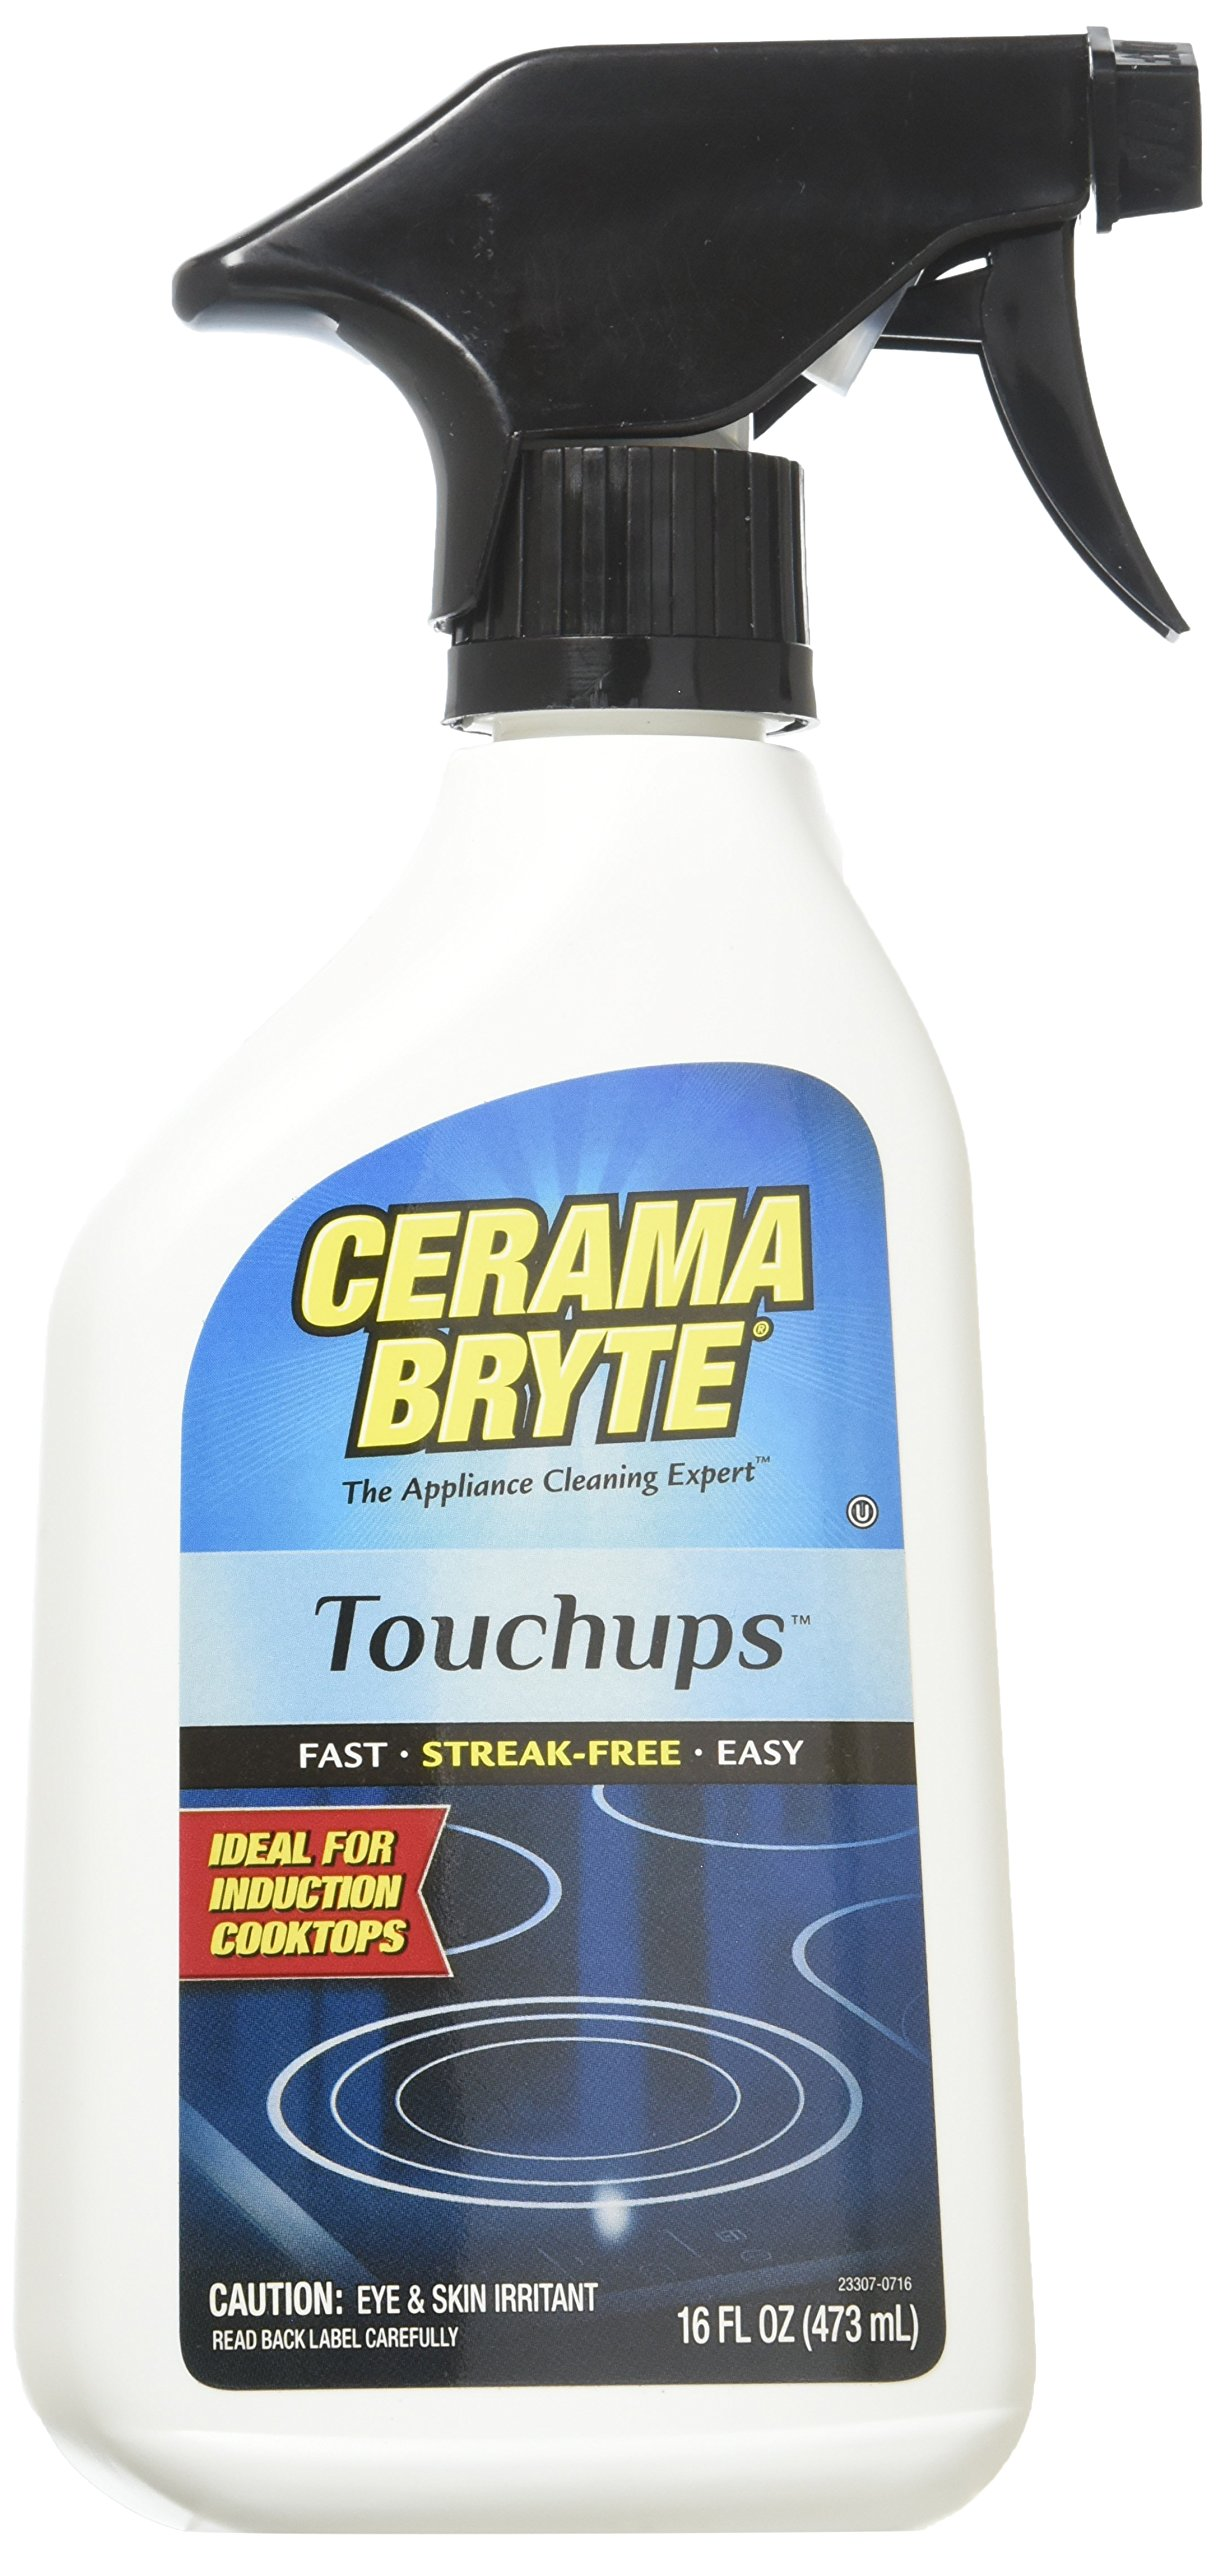 (2 Pack) Cerama Bryte Touchups Ceramic Cooktop Cleaner Trigger Spray, 16 oz. Each